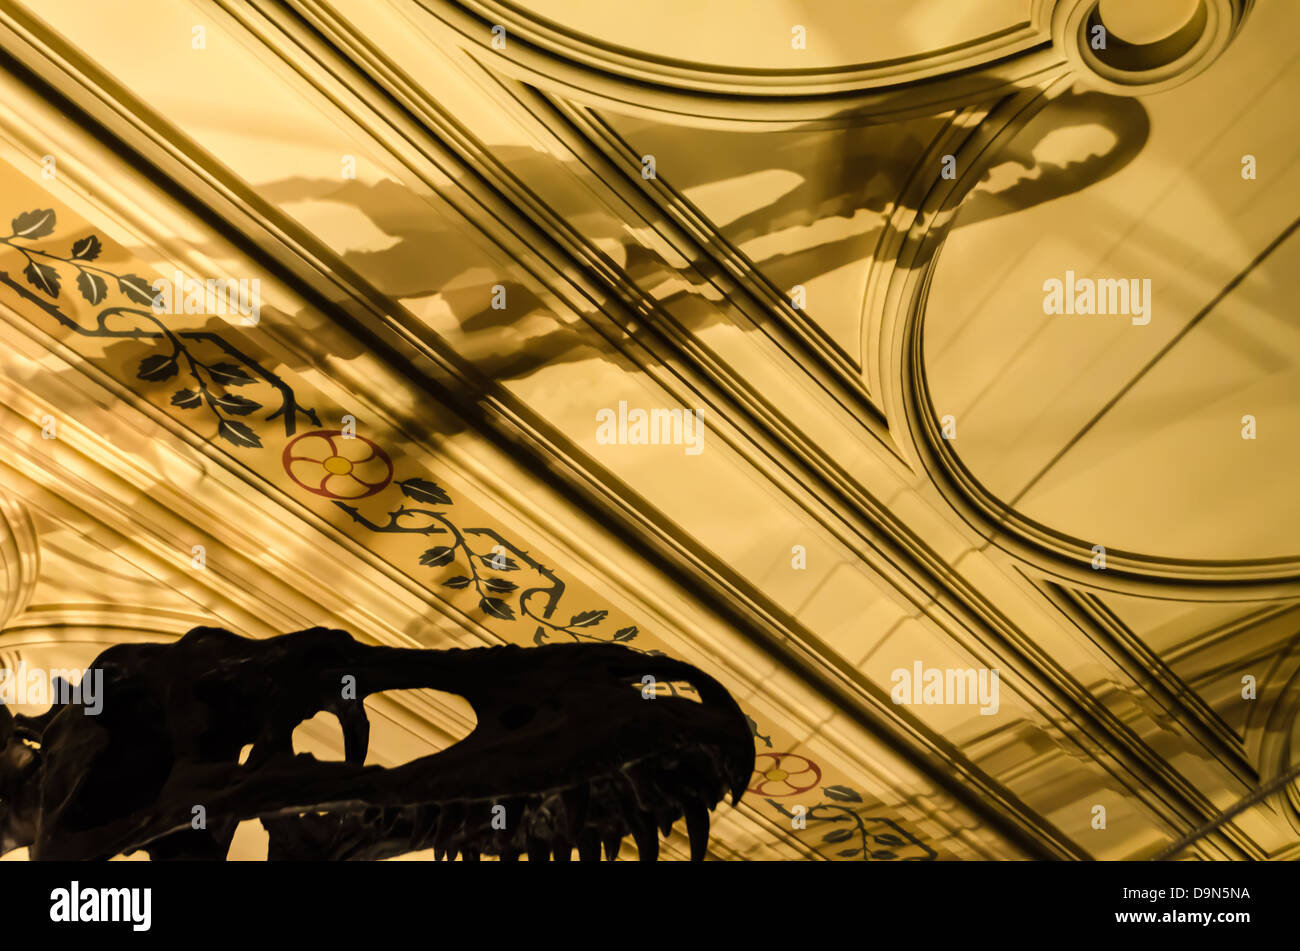 Dinosaur skeleton casting a shadow on the ceiling of the Natural History Museum. London, England. - Stock Image